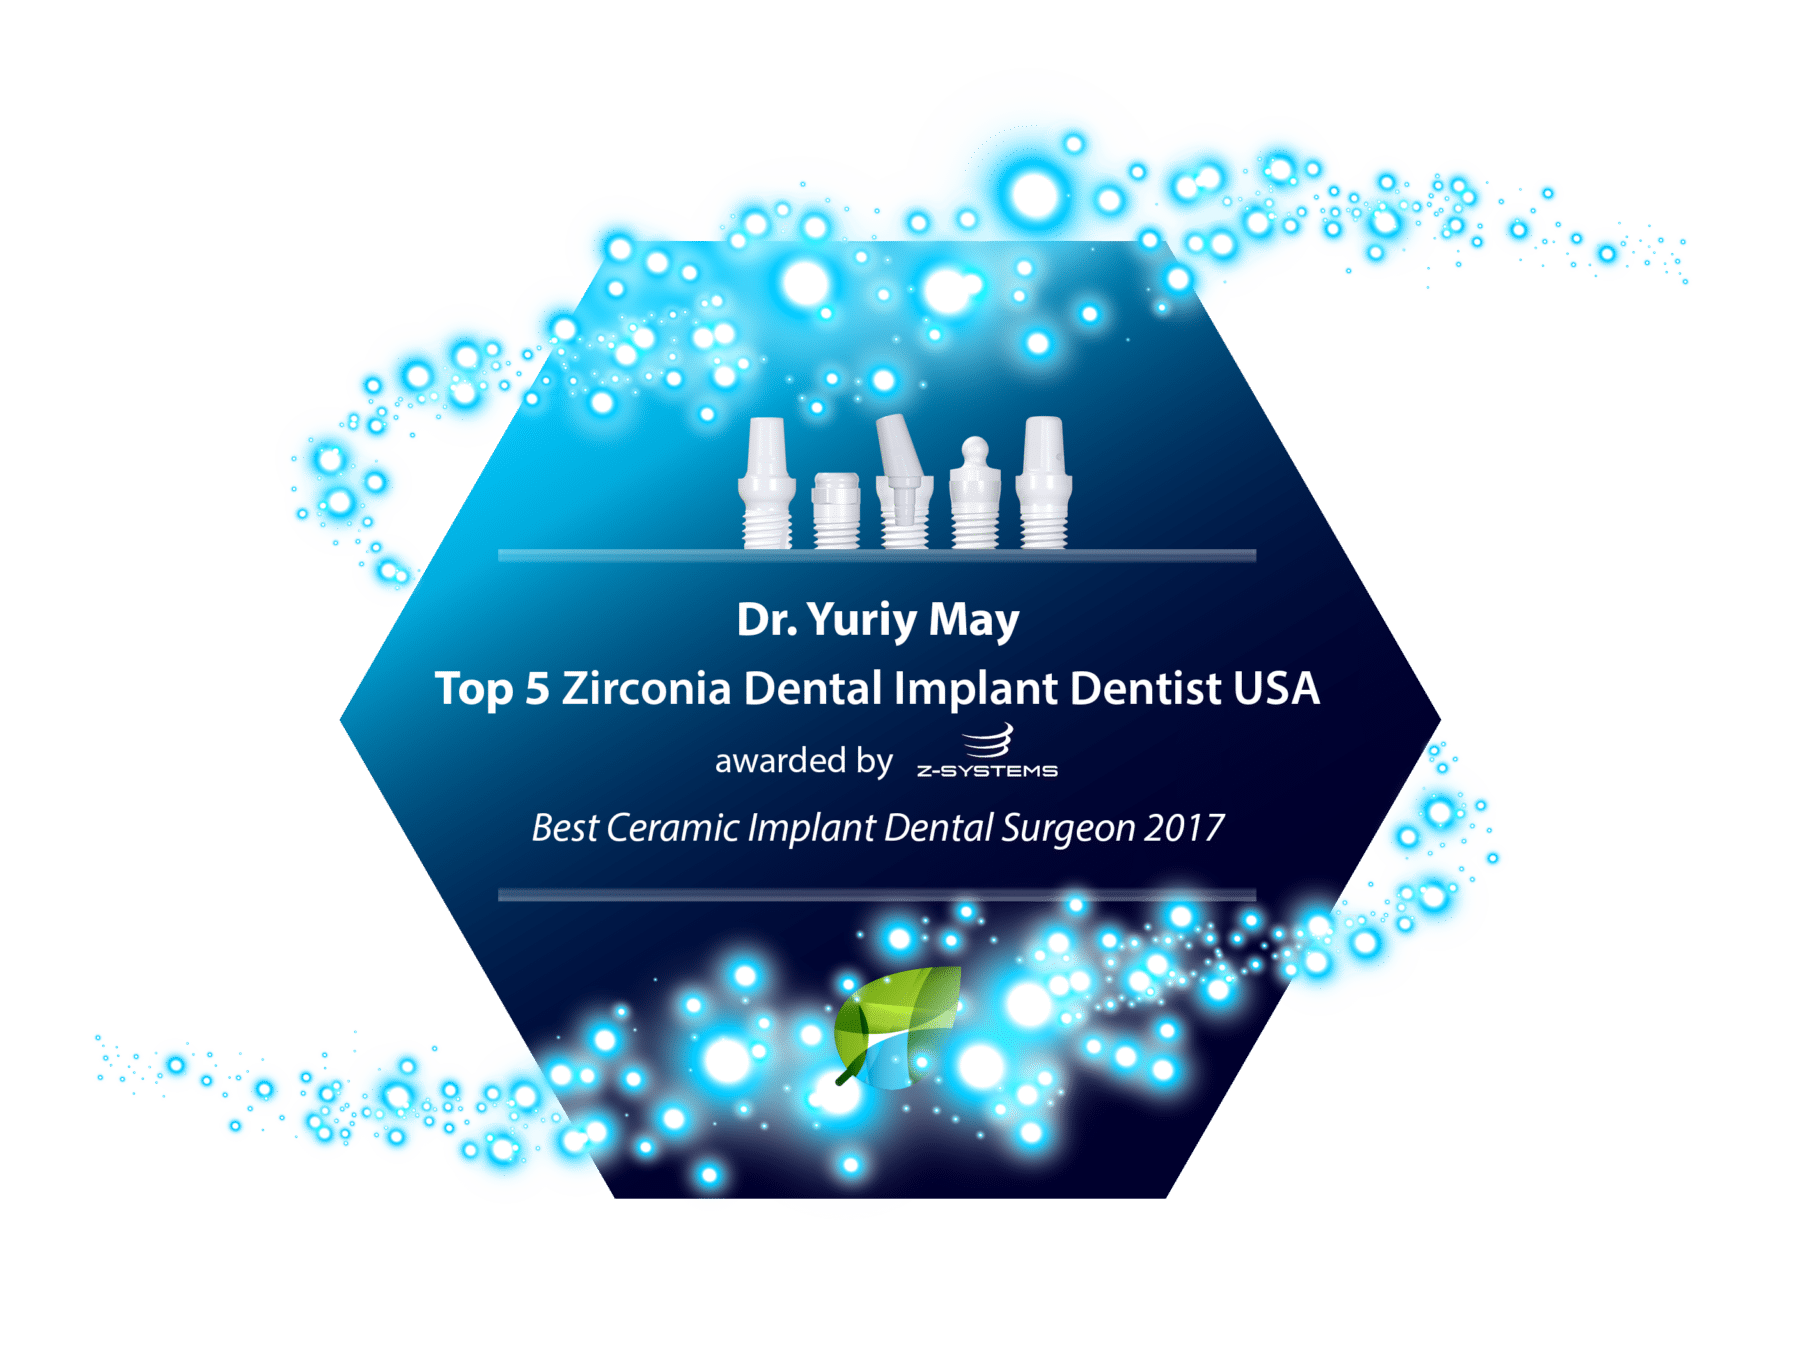 Zirconia Implant Dentist Dr. Yuriy May CT Natural Dentistry Best Ceramic Dental Implants Dentist Connecticut USA